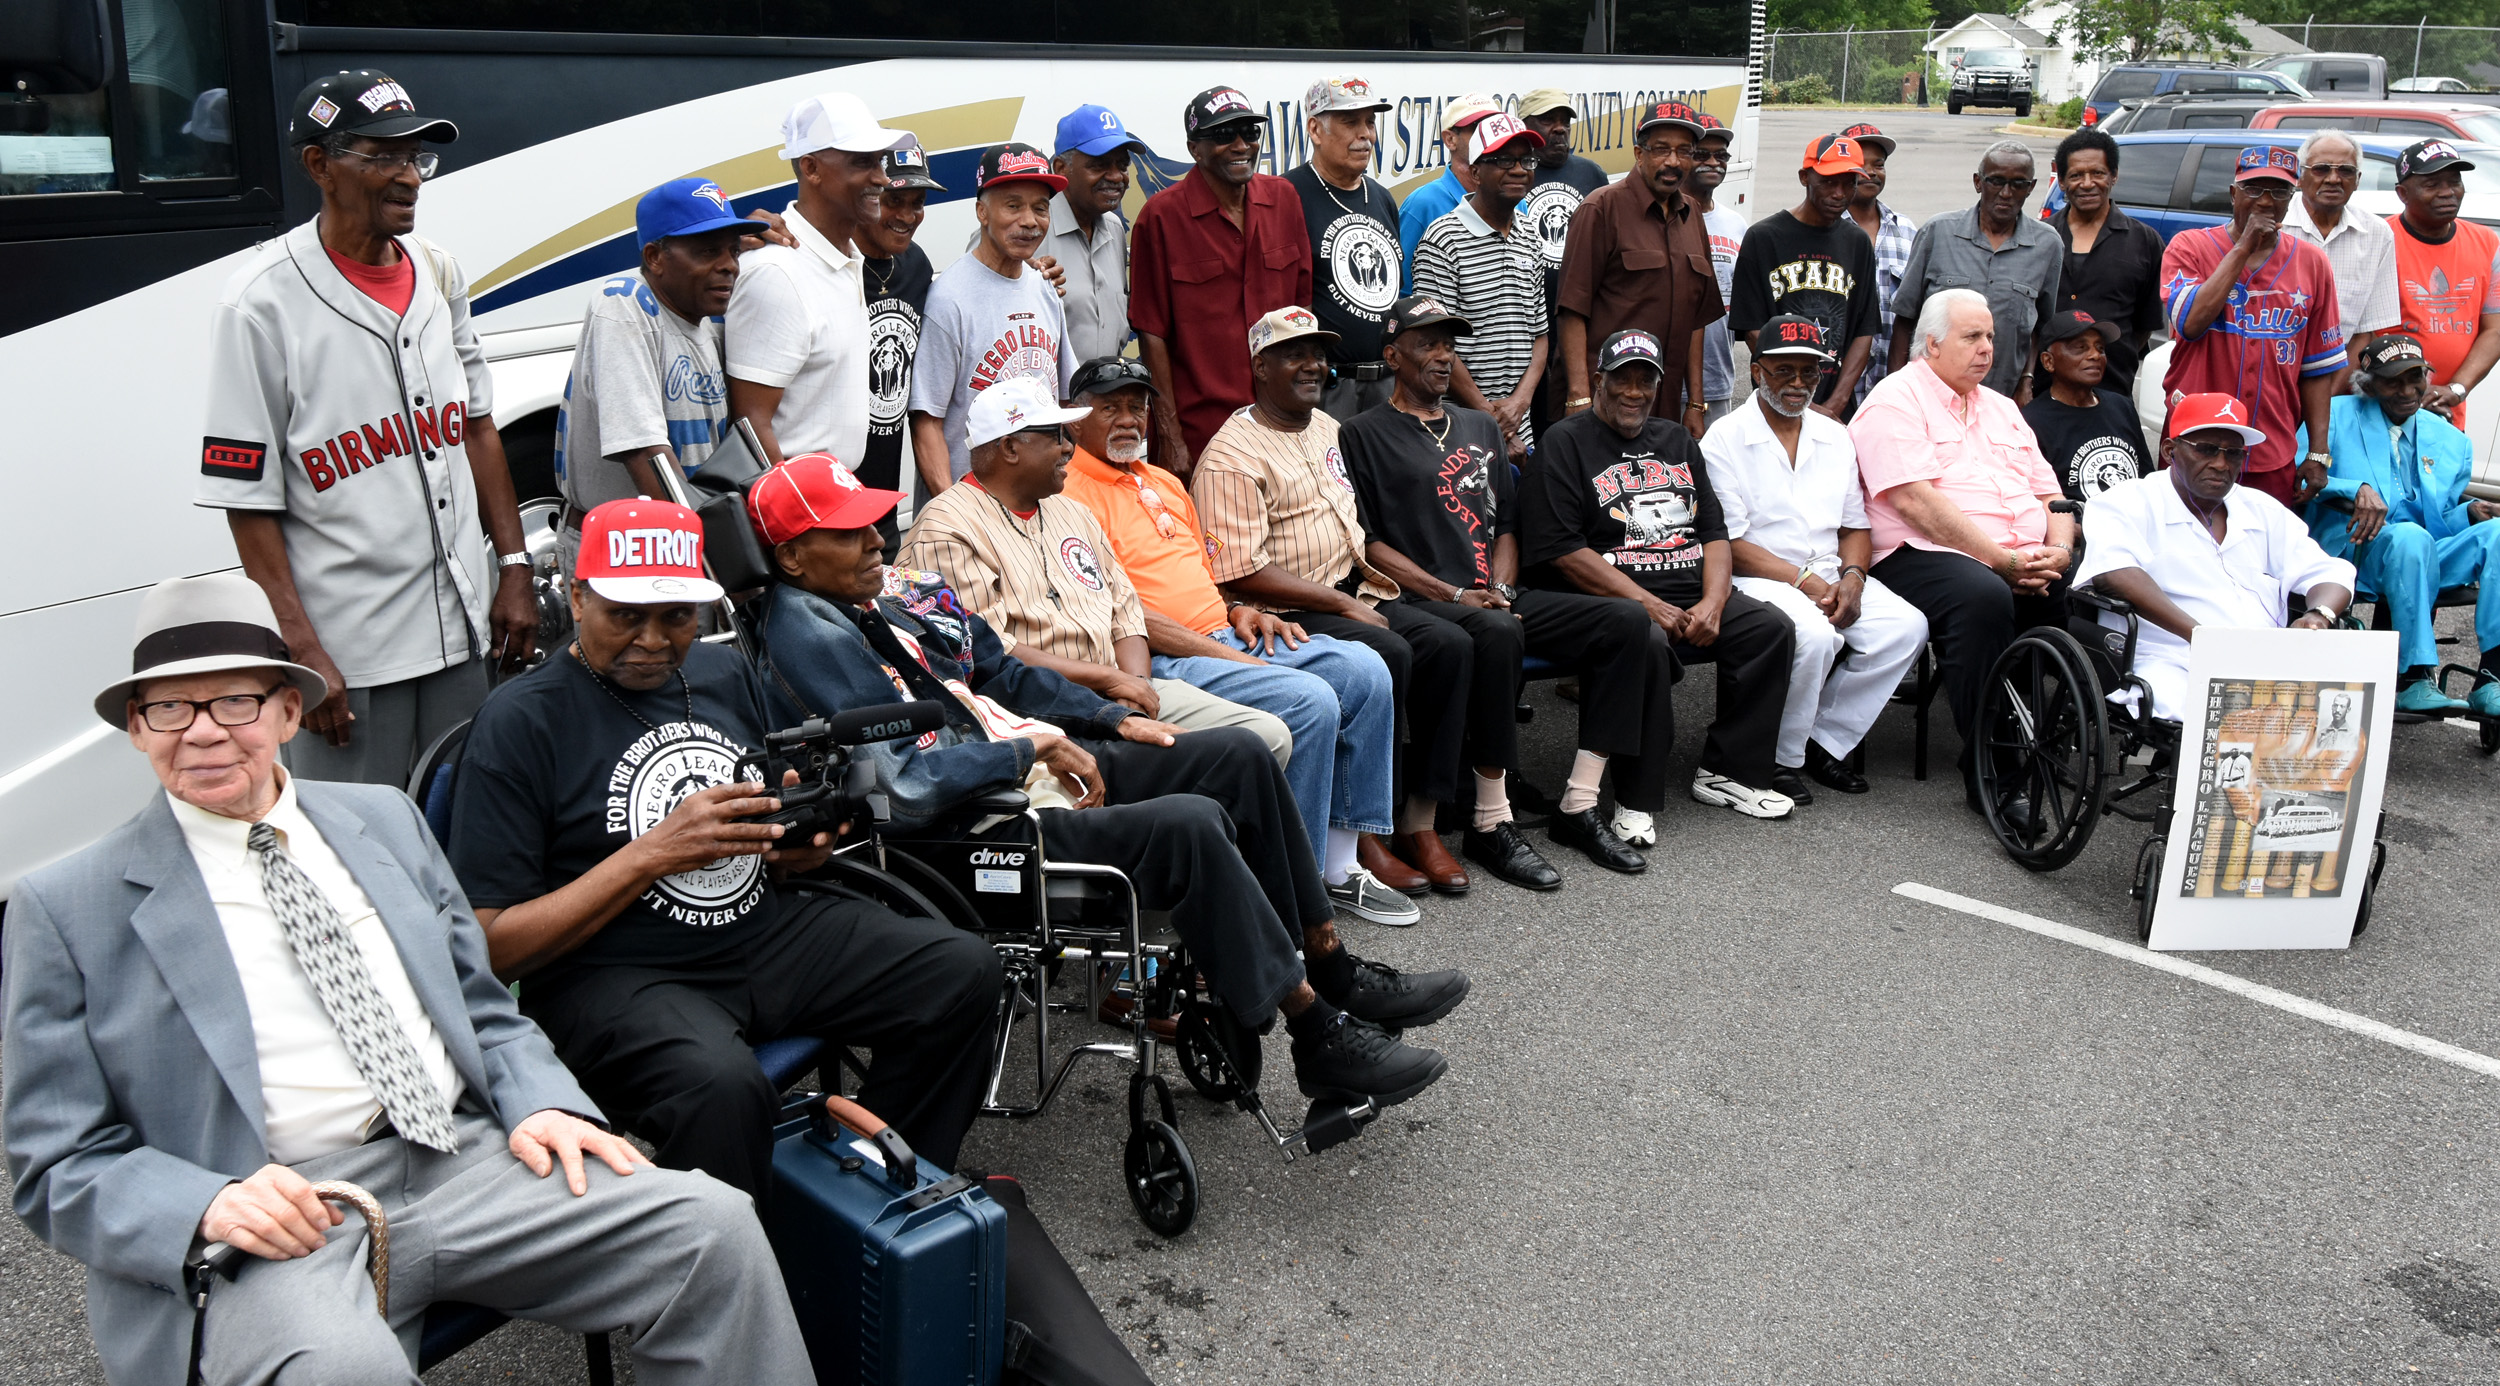 Former Negro League and Industrial League players pose for a photo on the campus of Lawson State Community College during their annual reunion. (Solomon Crenshaw Jr./For The Birmingham Times).